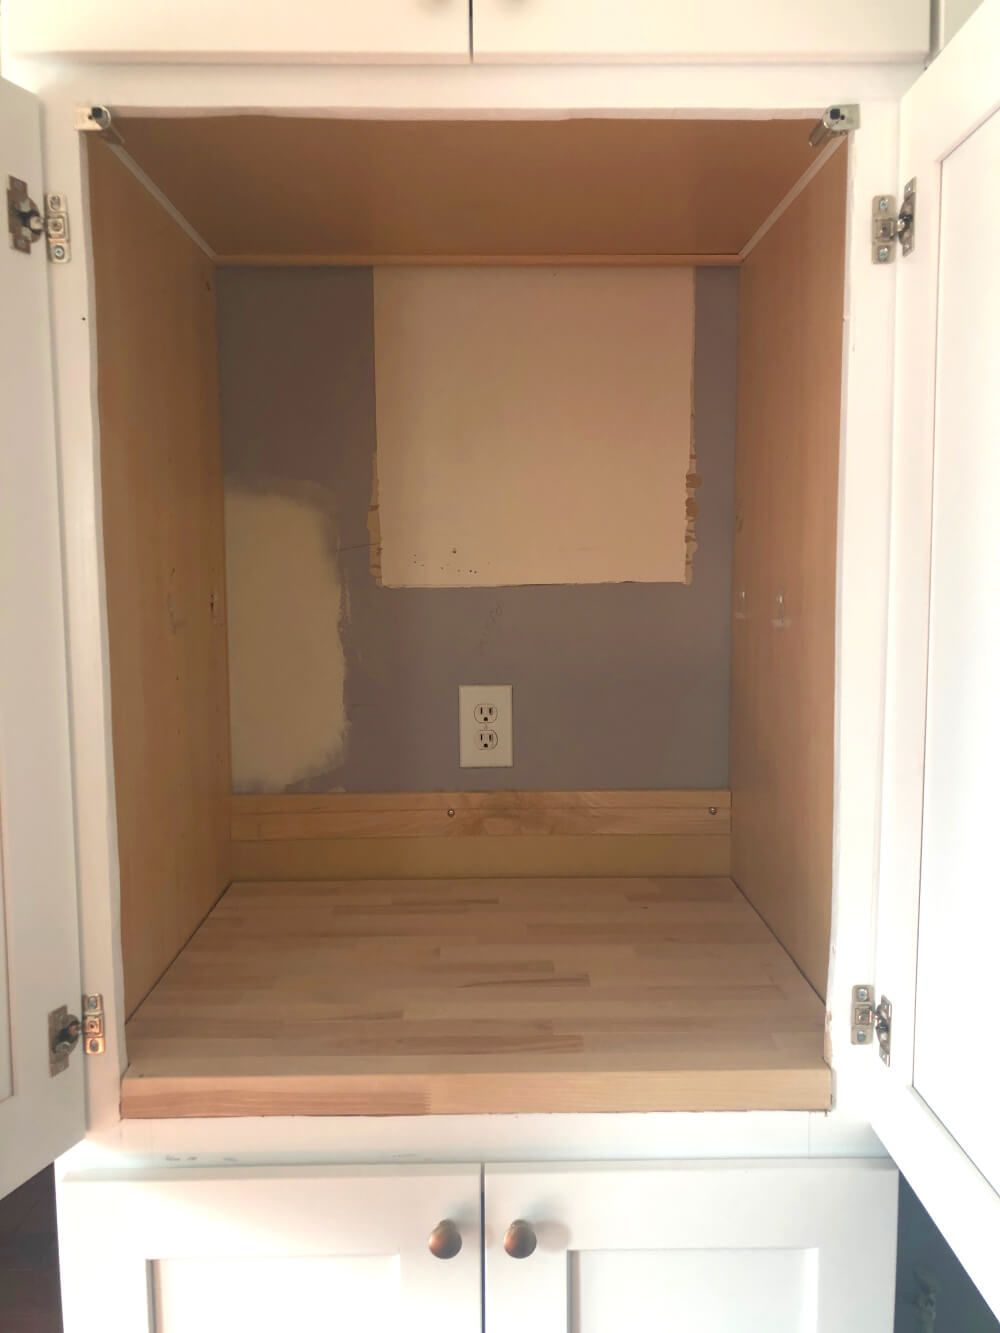 How To Modify A Single Wall Oven Cabinet in 2020 | Single ...